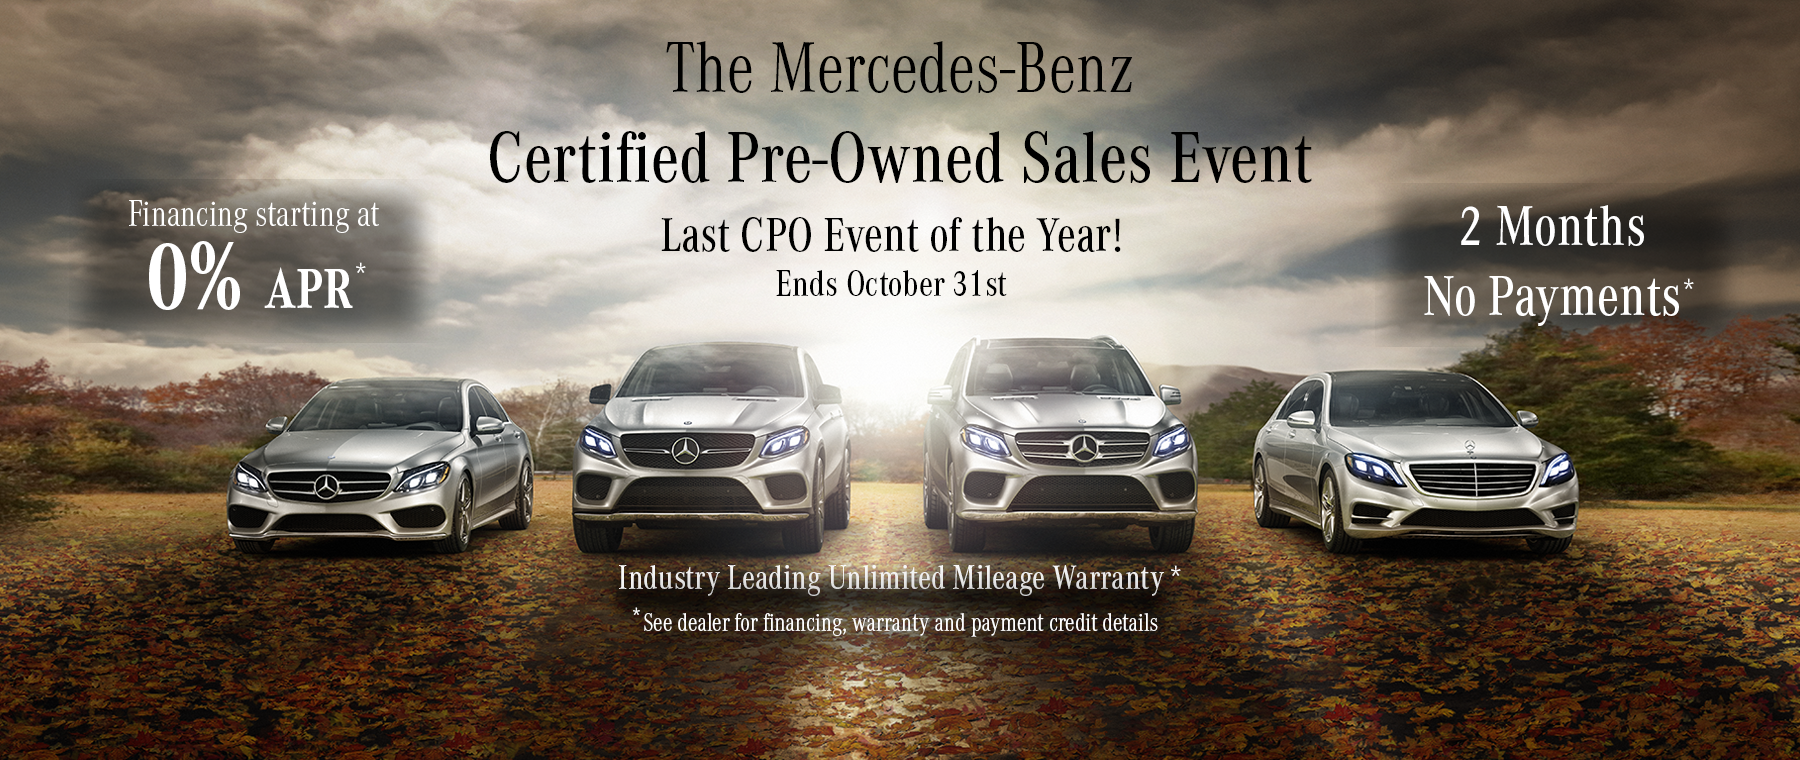 CPO Vehicles - Financing at 0% APR and 2 Months No Payment